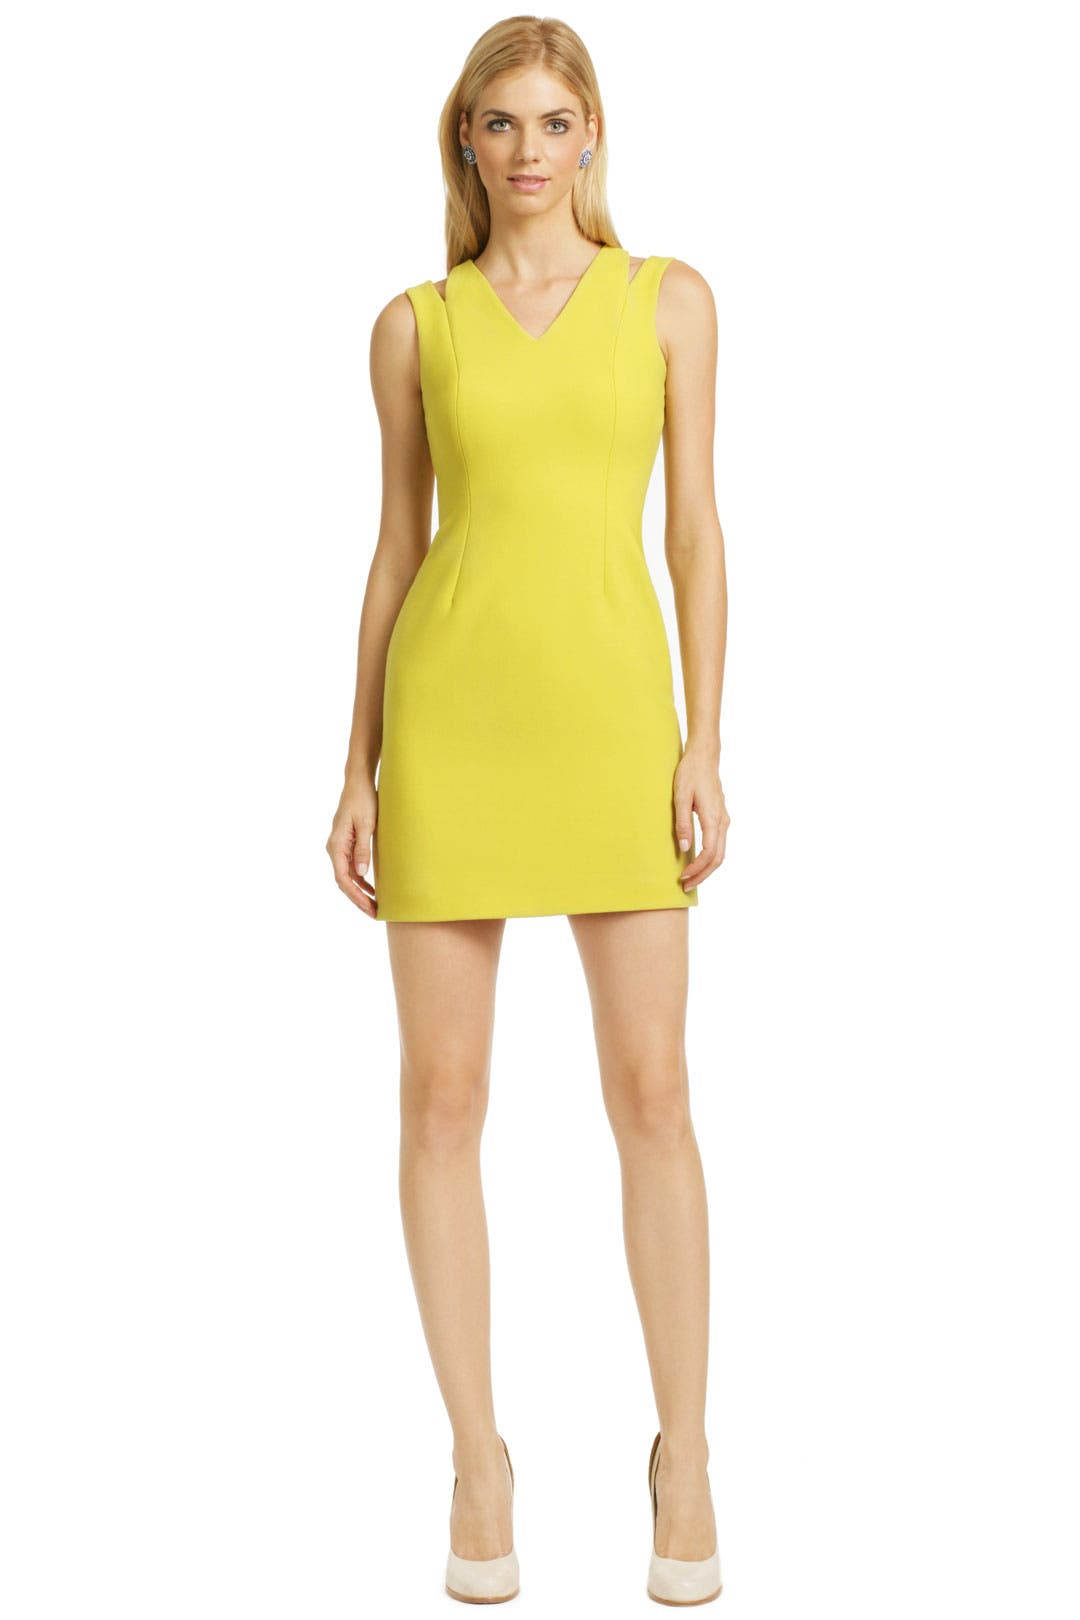 Lemon Lime Tart Sheath by Versus by Versace